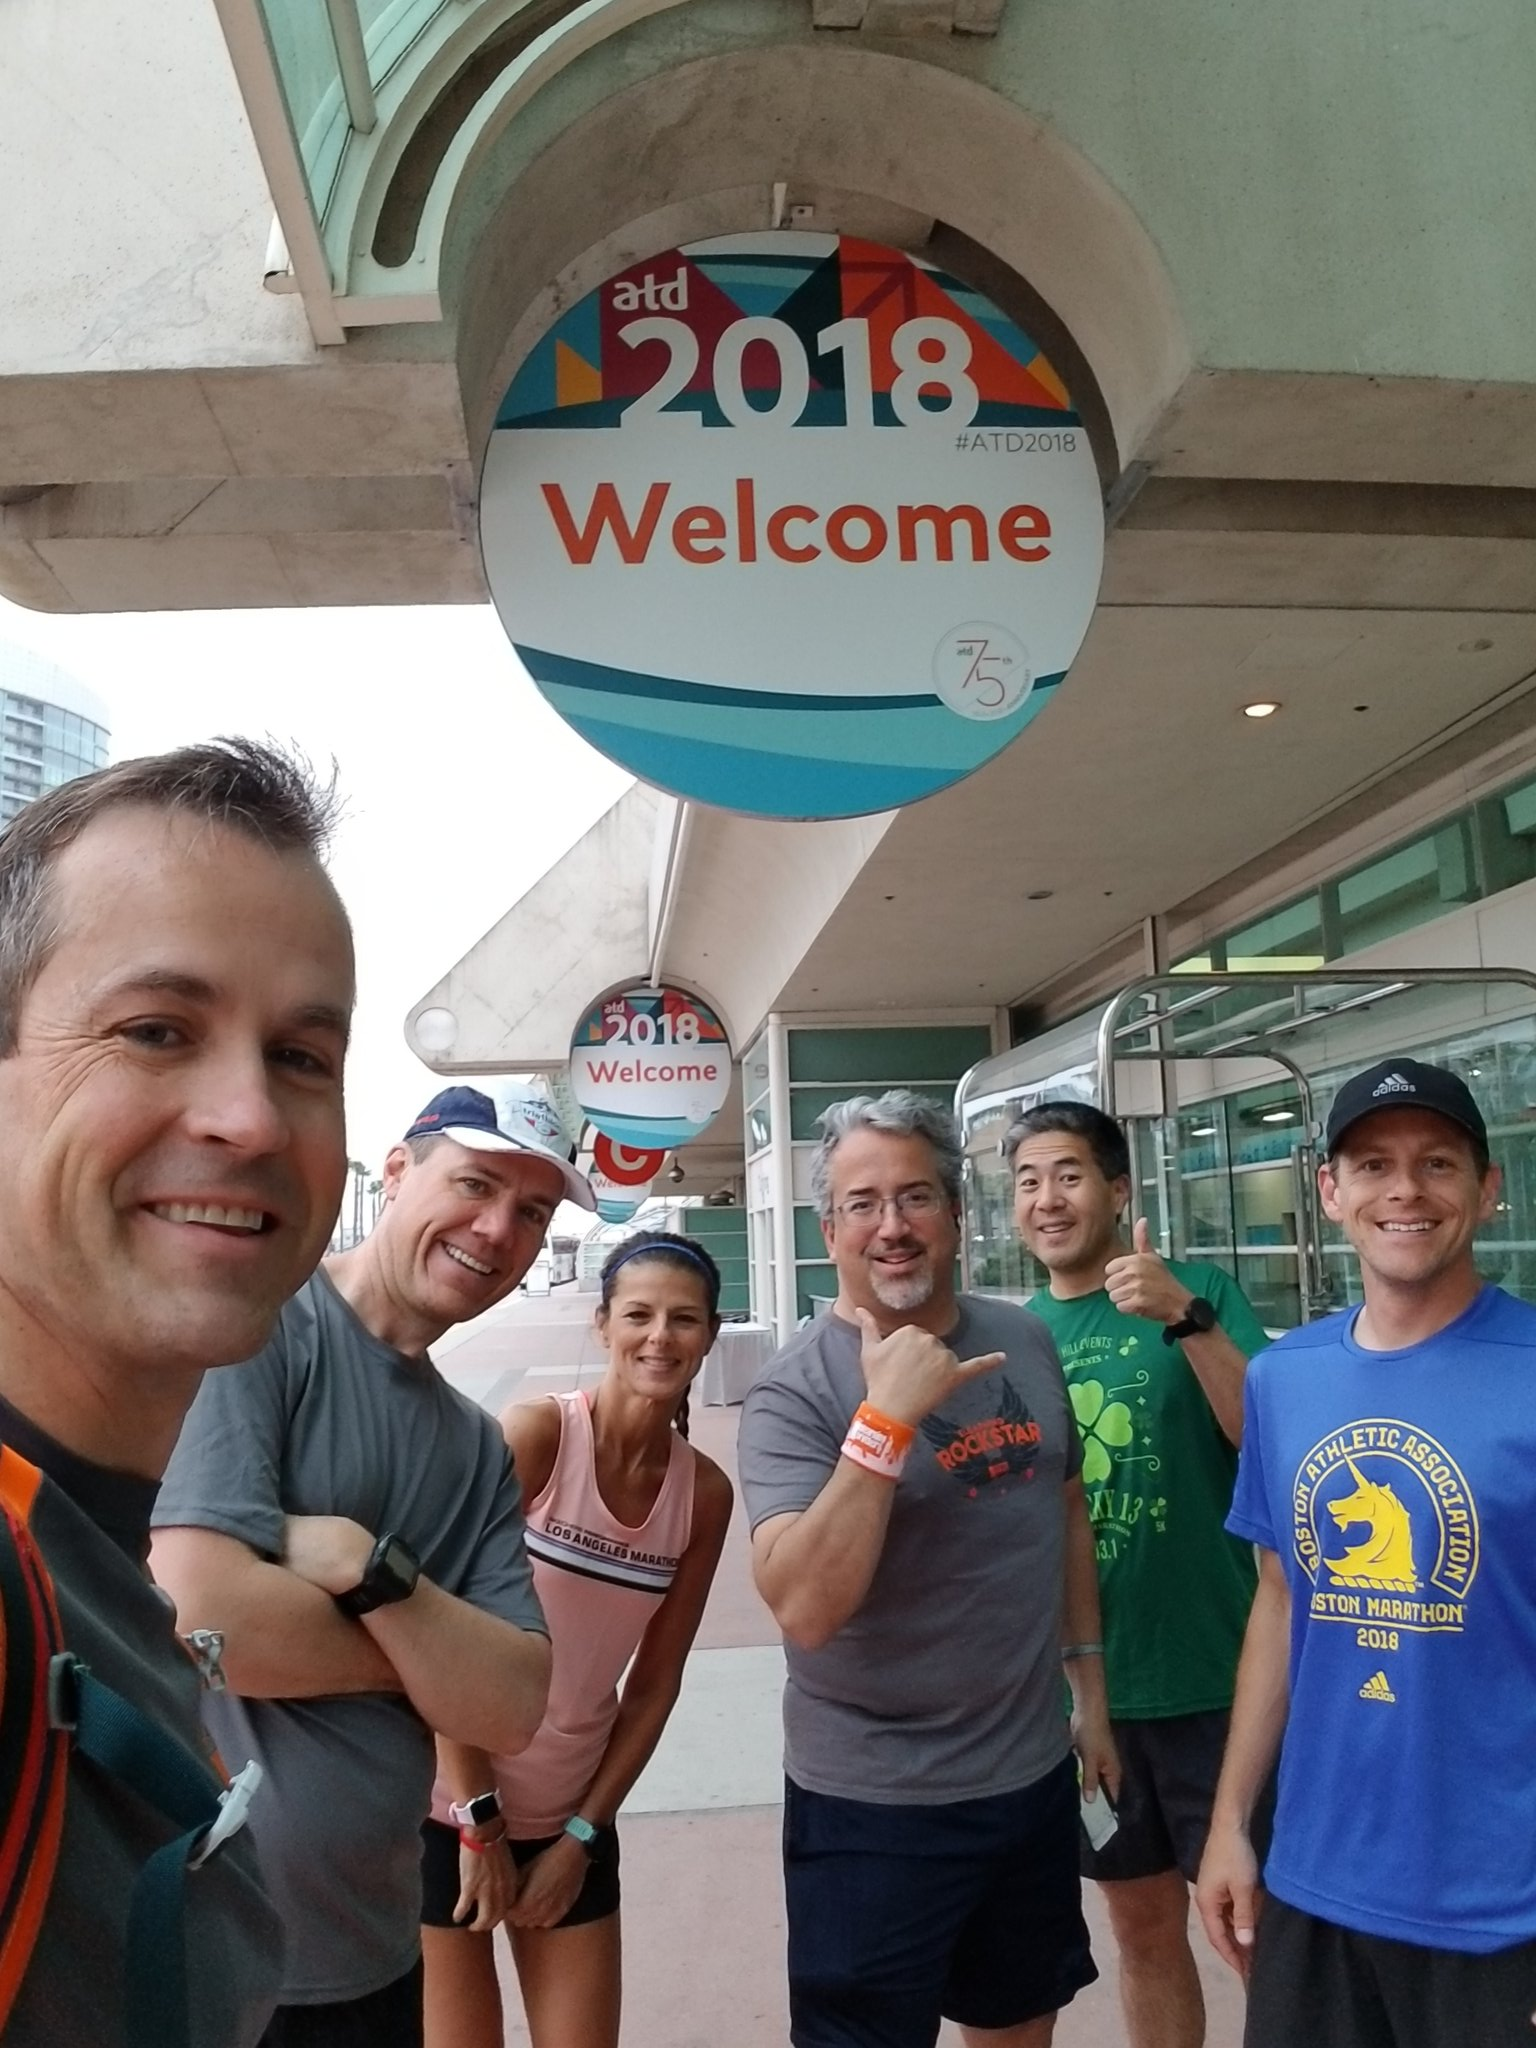 eLearning athletes going for a morning run at #ATD2018 @kimpossible713 @planter @AndrewScivally @vincehan @rvass2 @speedclimb @dominKnow @DDIworld @mobile_coach https://t.co/qlSBYd9Igo